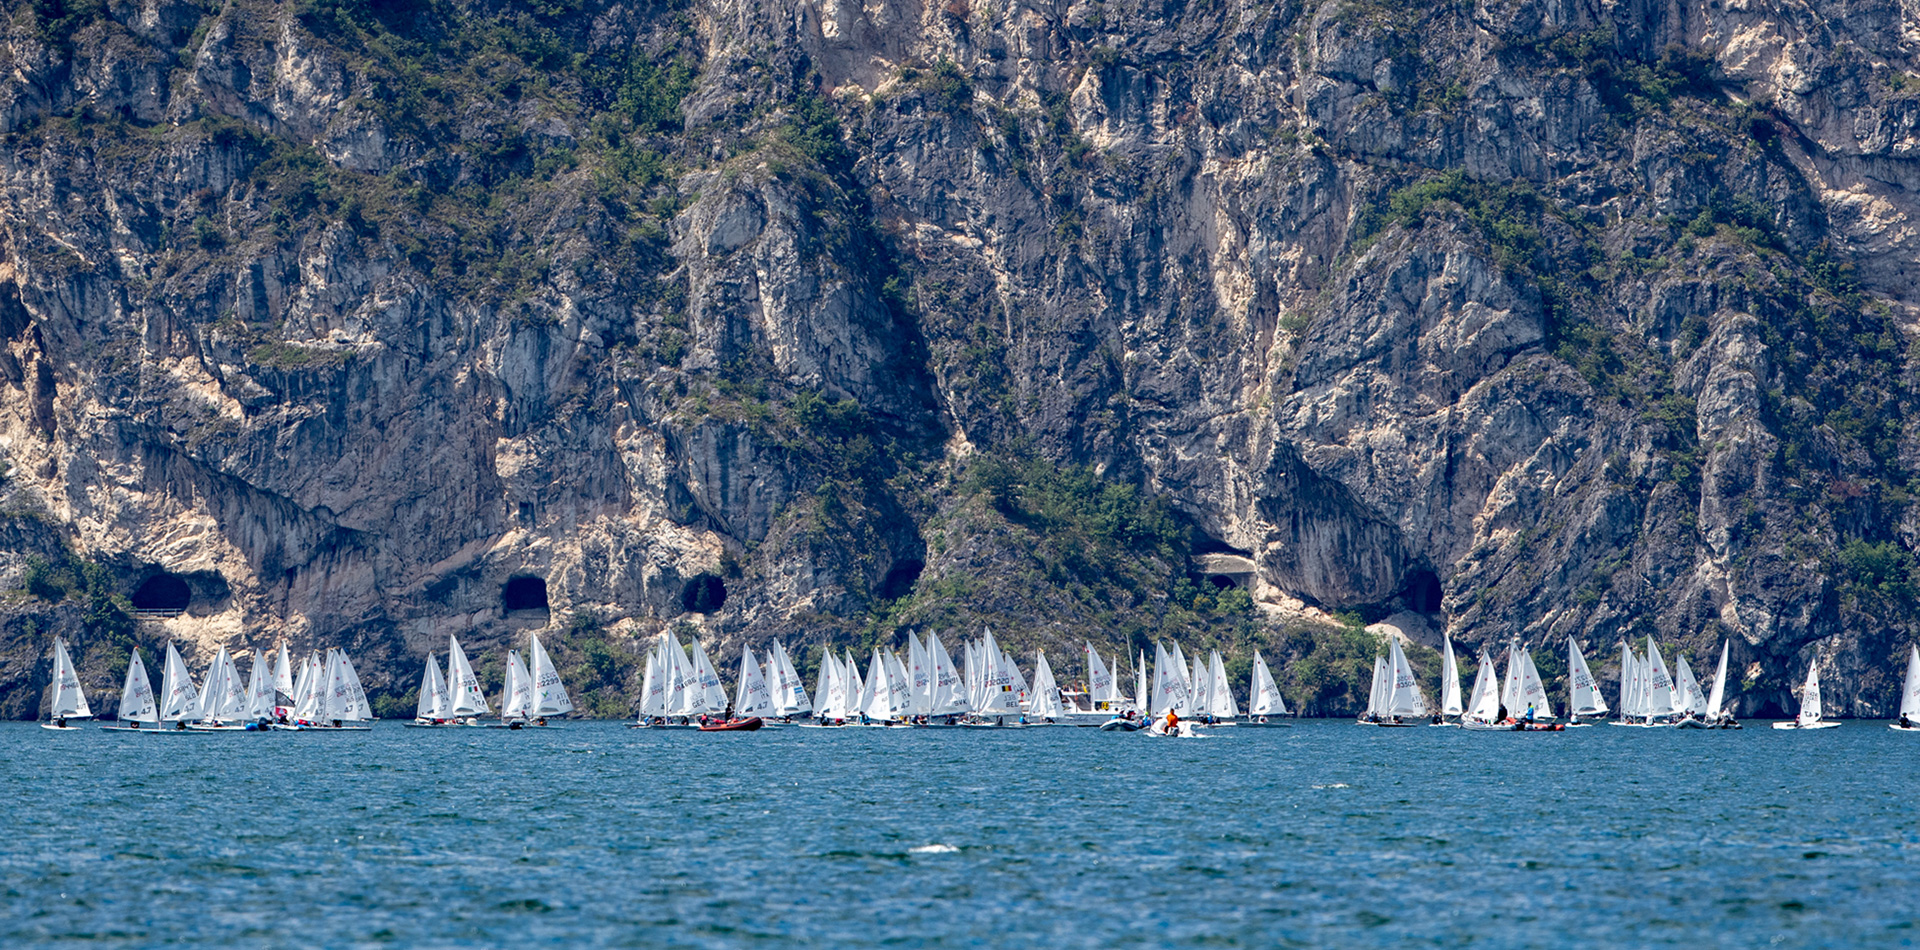 2019 Laser Europa Cup Italy Day 1